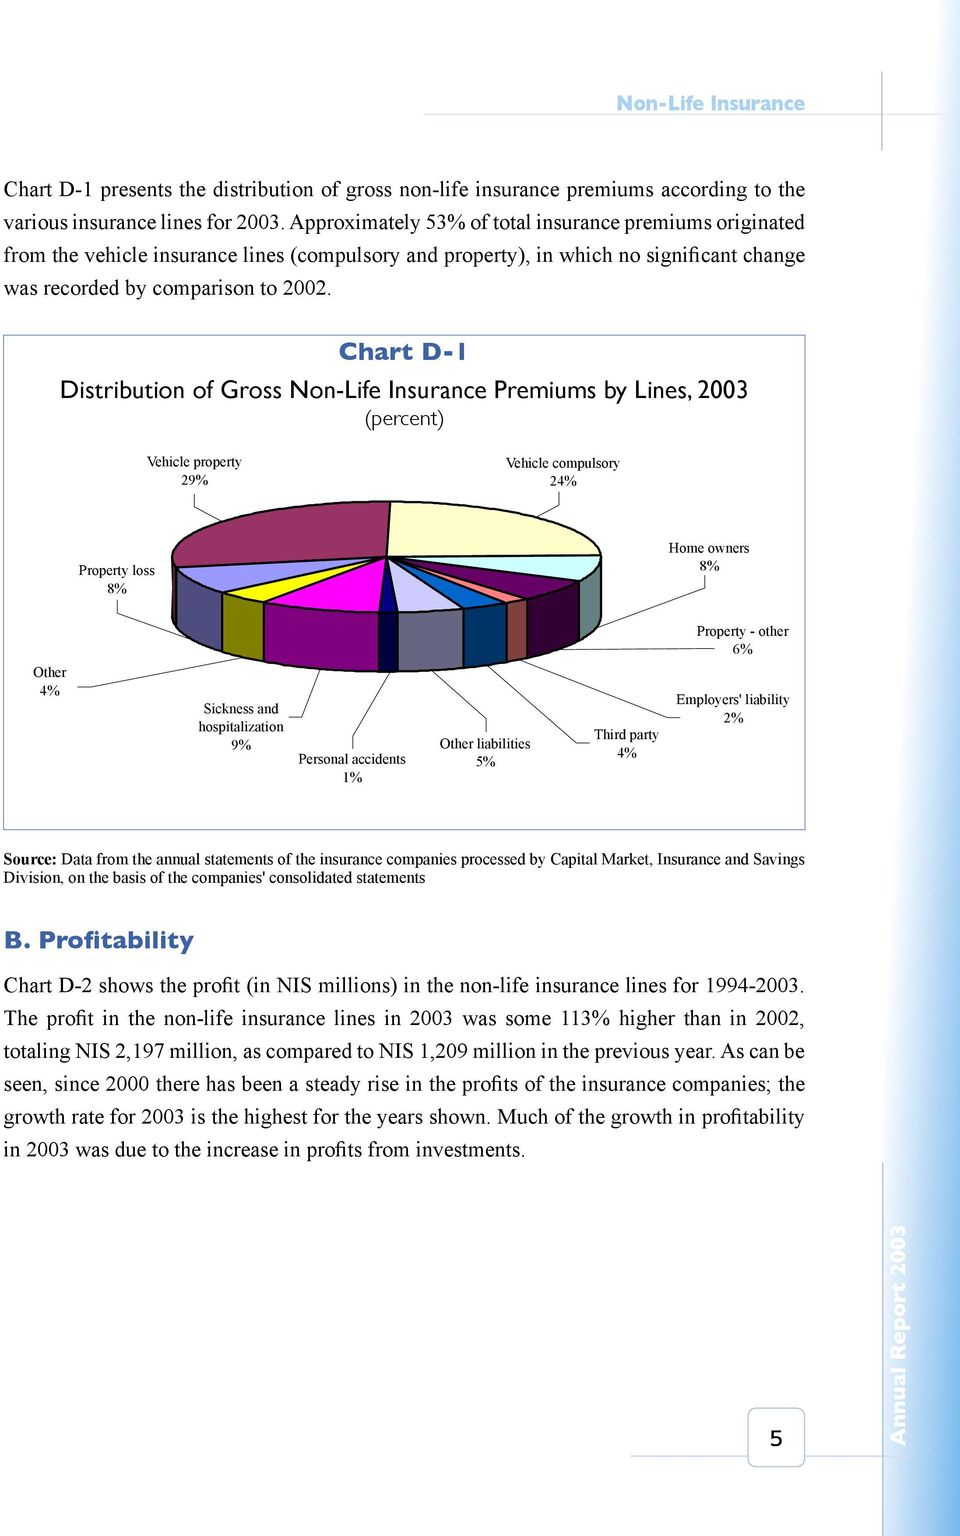 Chart D-1 Distribution of Gross Non-Life Insurance Premiums by Lines, 2003 (percent) Vehicle property 29% Vehicle compulsory 24% Property loss 8% Home owners 8% Property - other 6% Other 4% Sickness